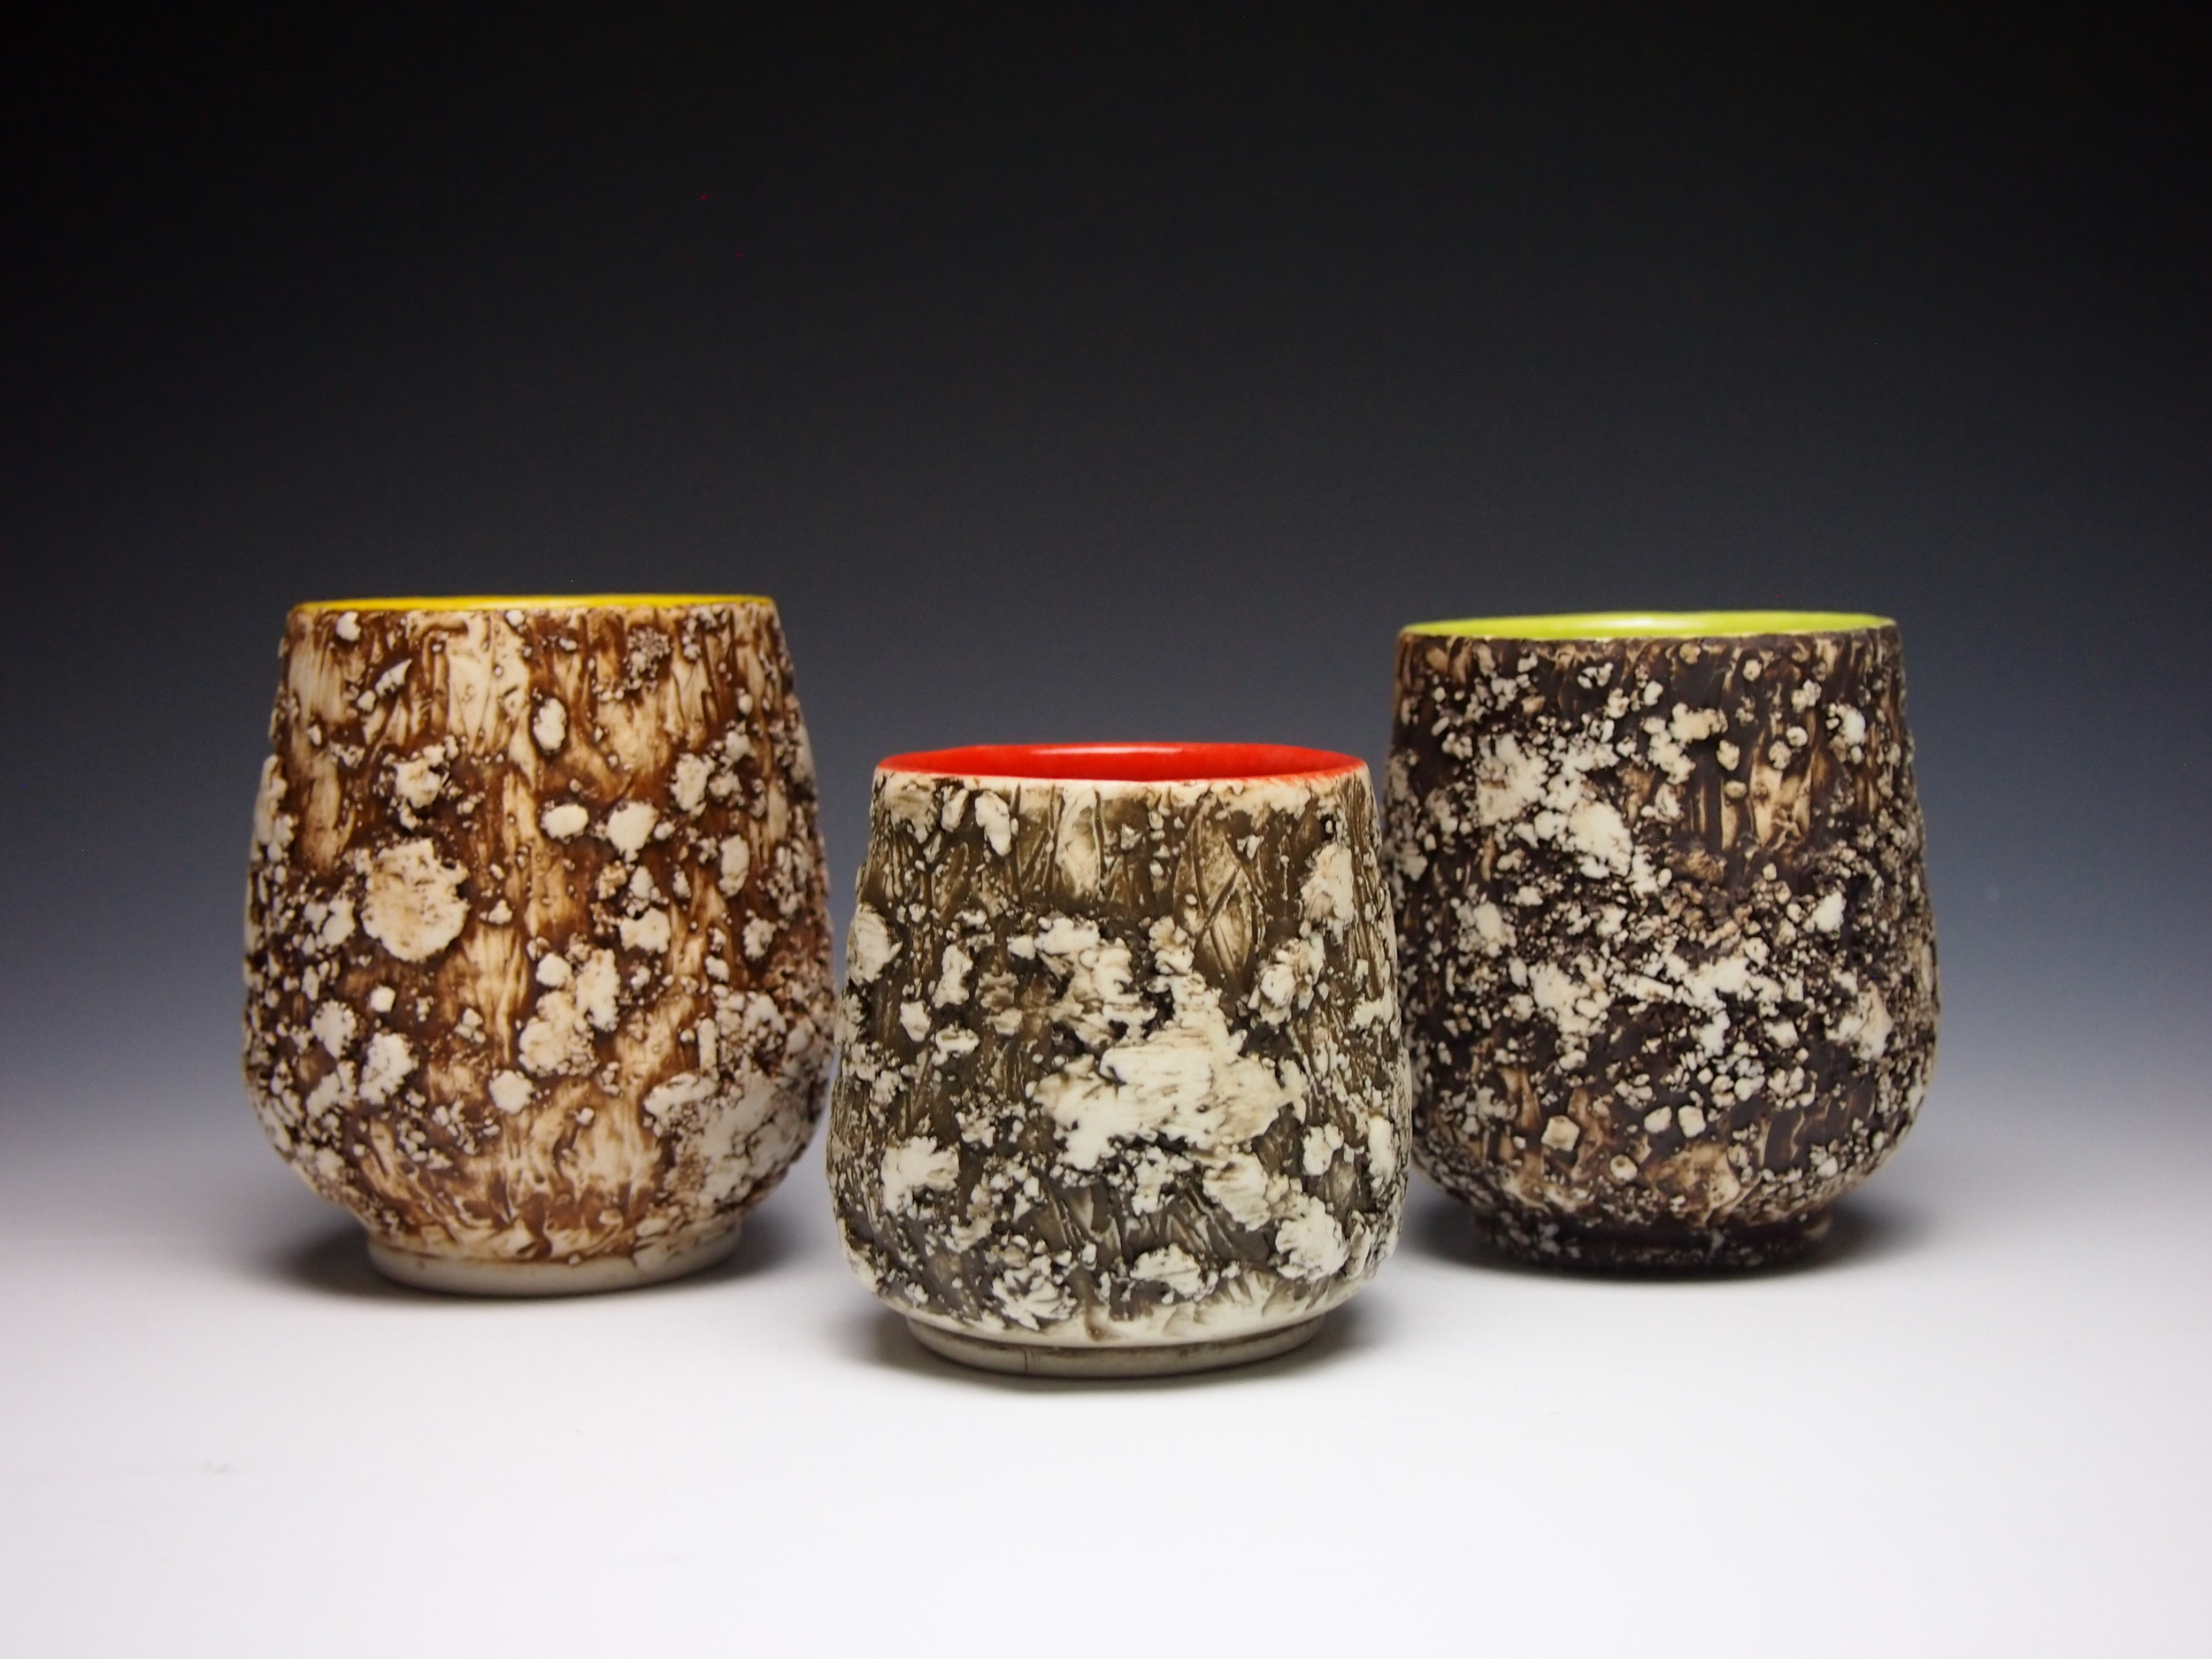 Assorted Lichen Cups